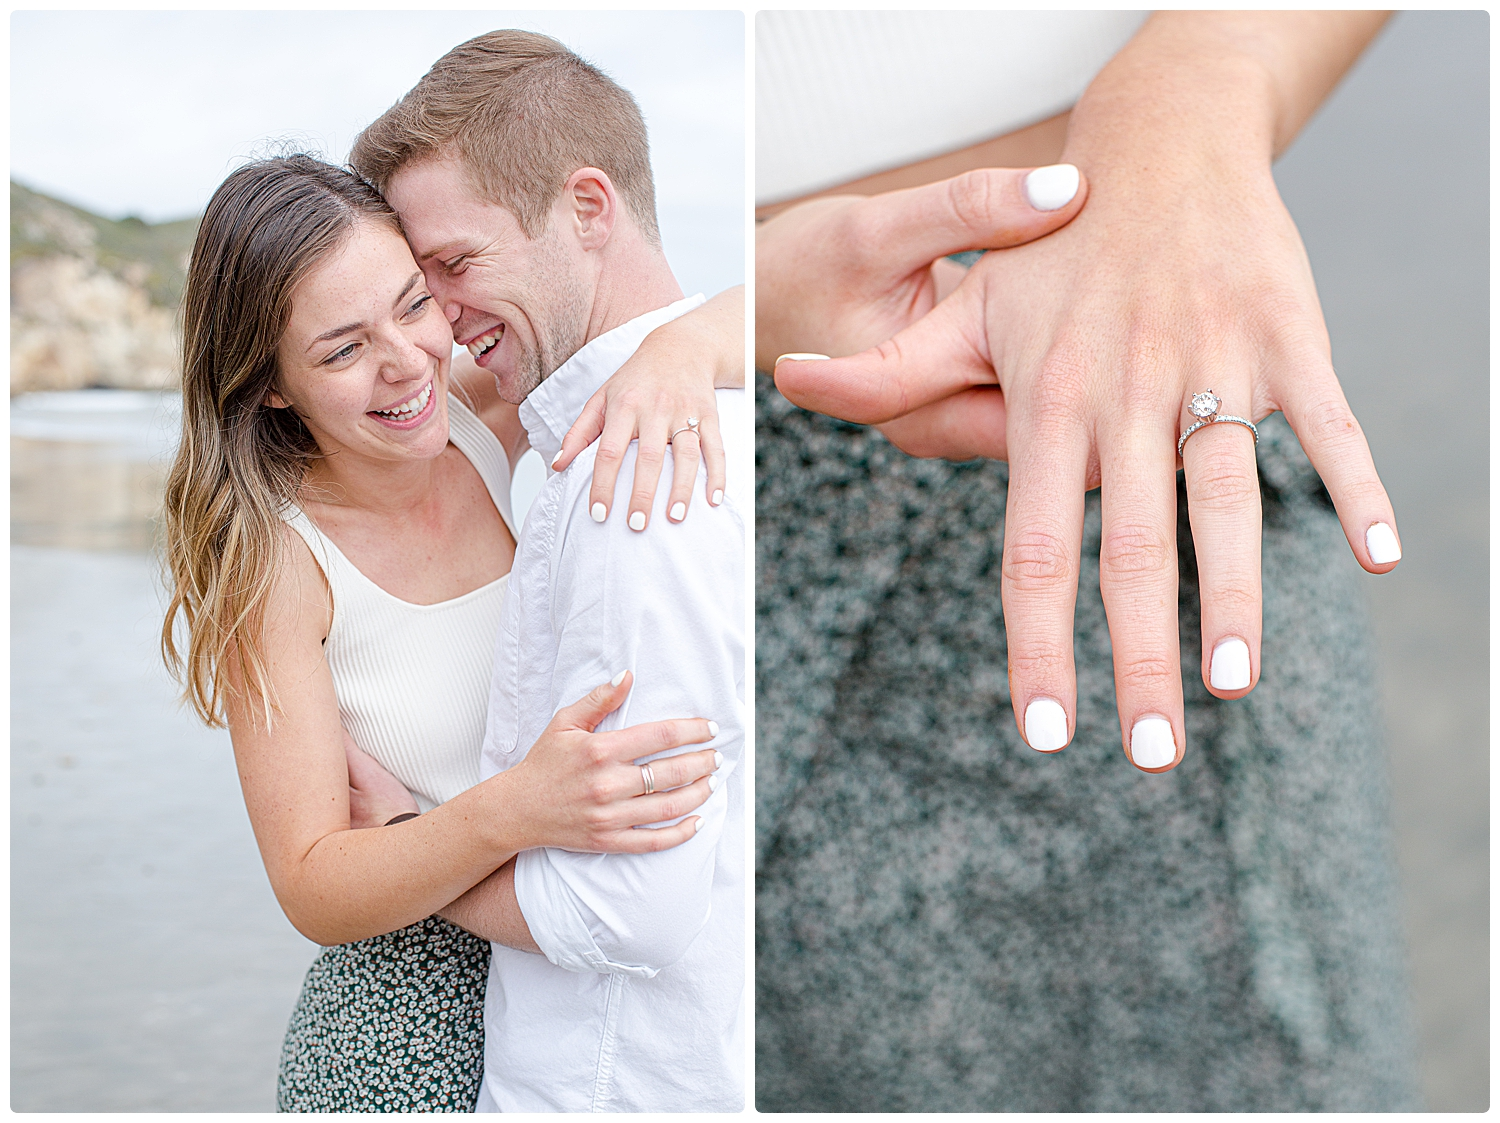 061919_EthanEmma_proposal_Renoda Campbell Photography-7156-1.jpg